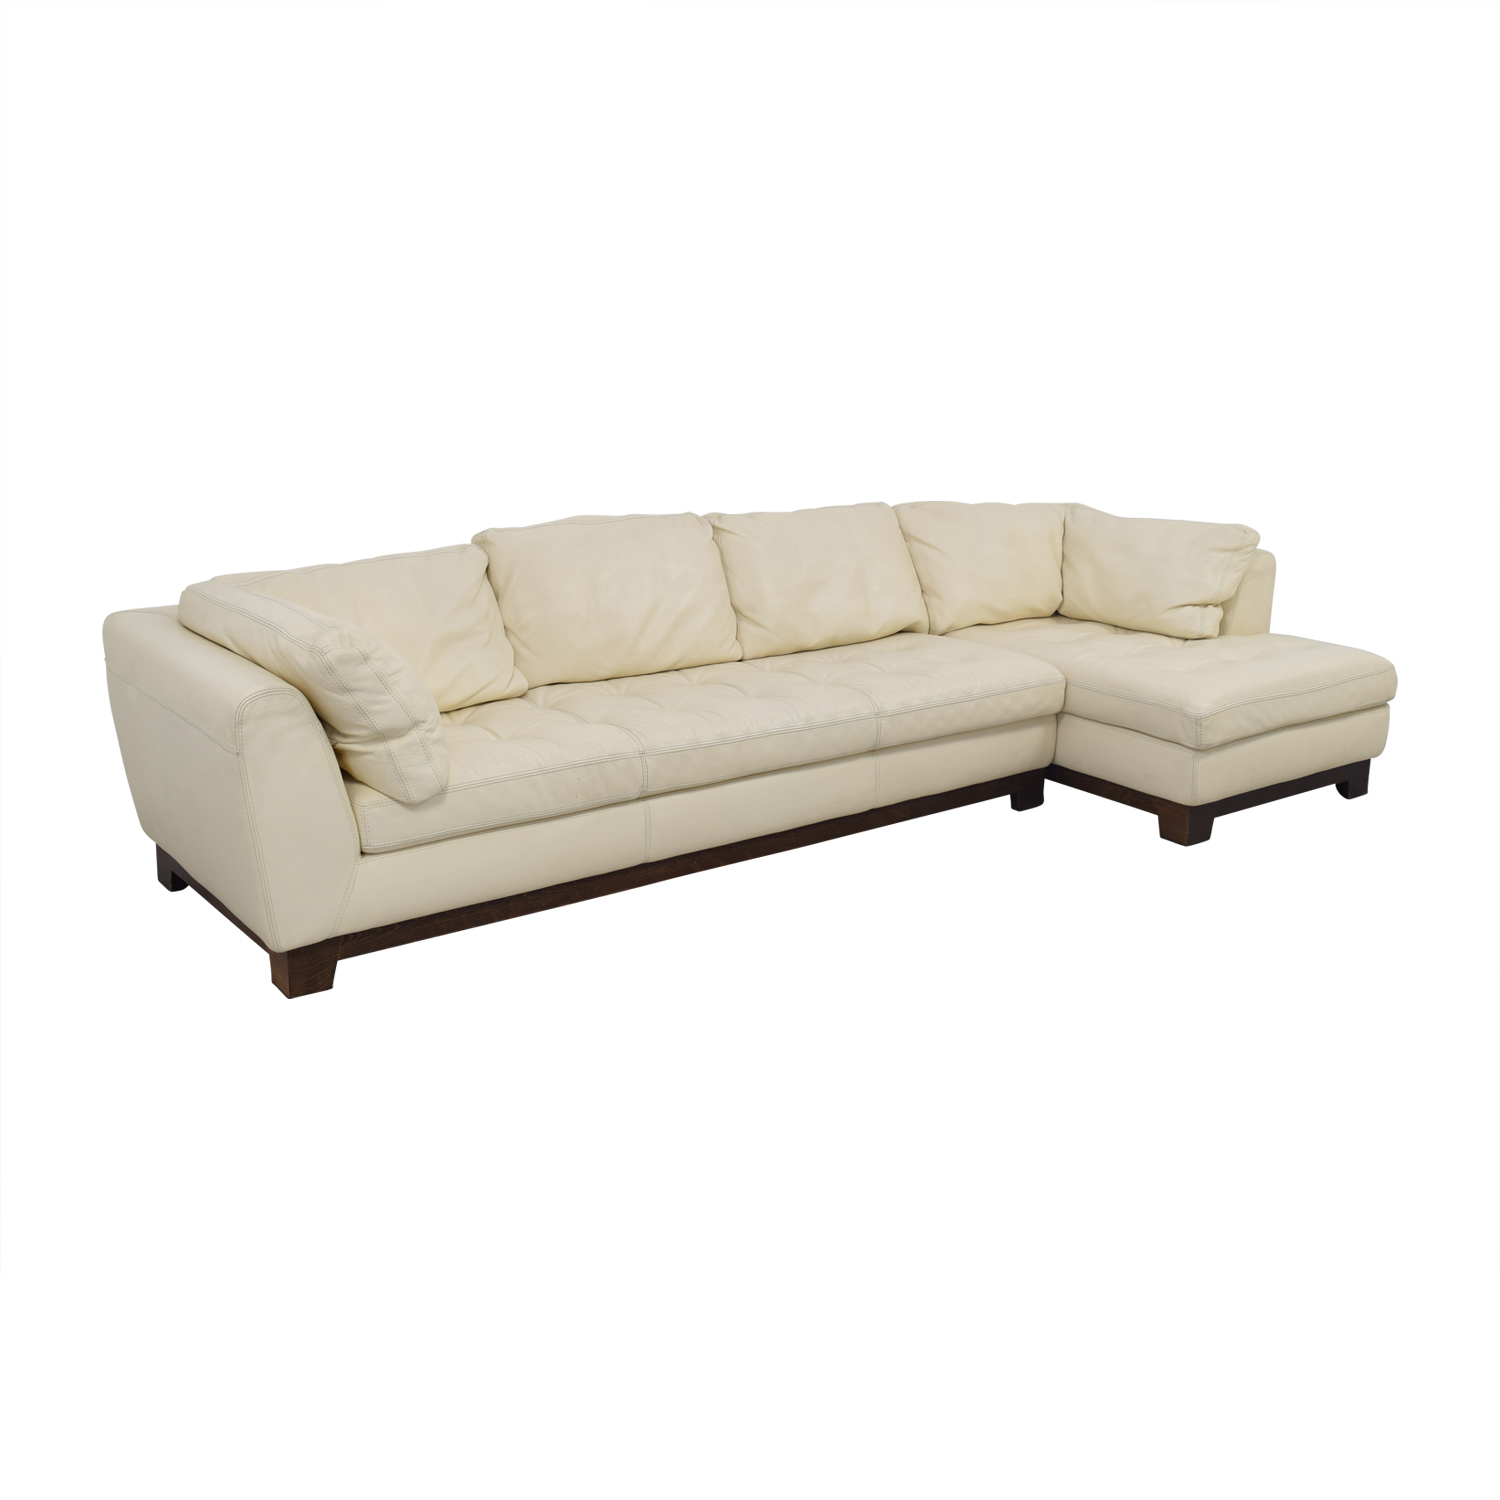 Chaise Roche Bobois 89 Off Roche Bobois Roche Bobois Cream Leather Chaise